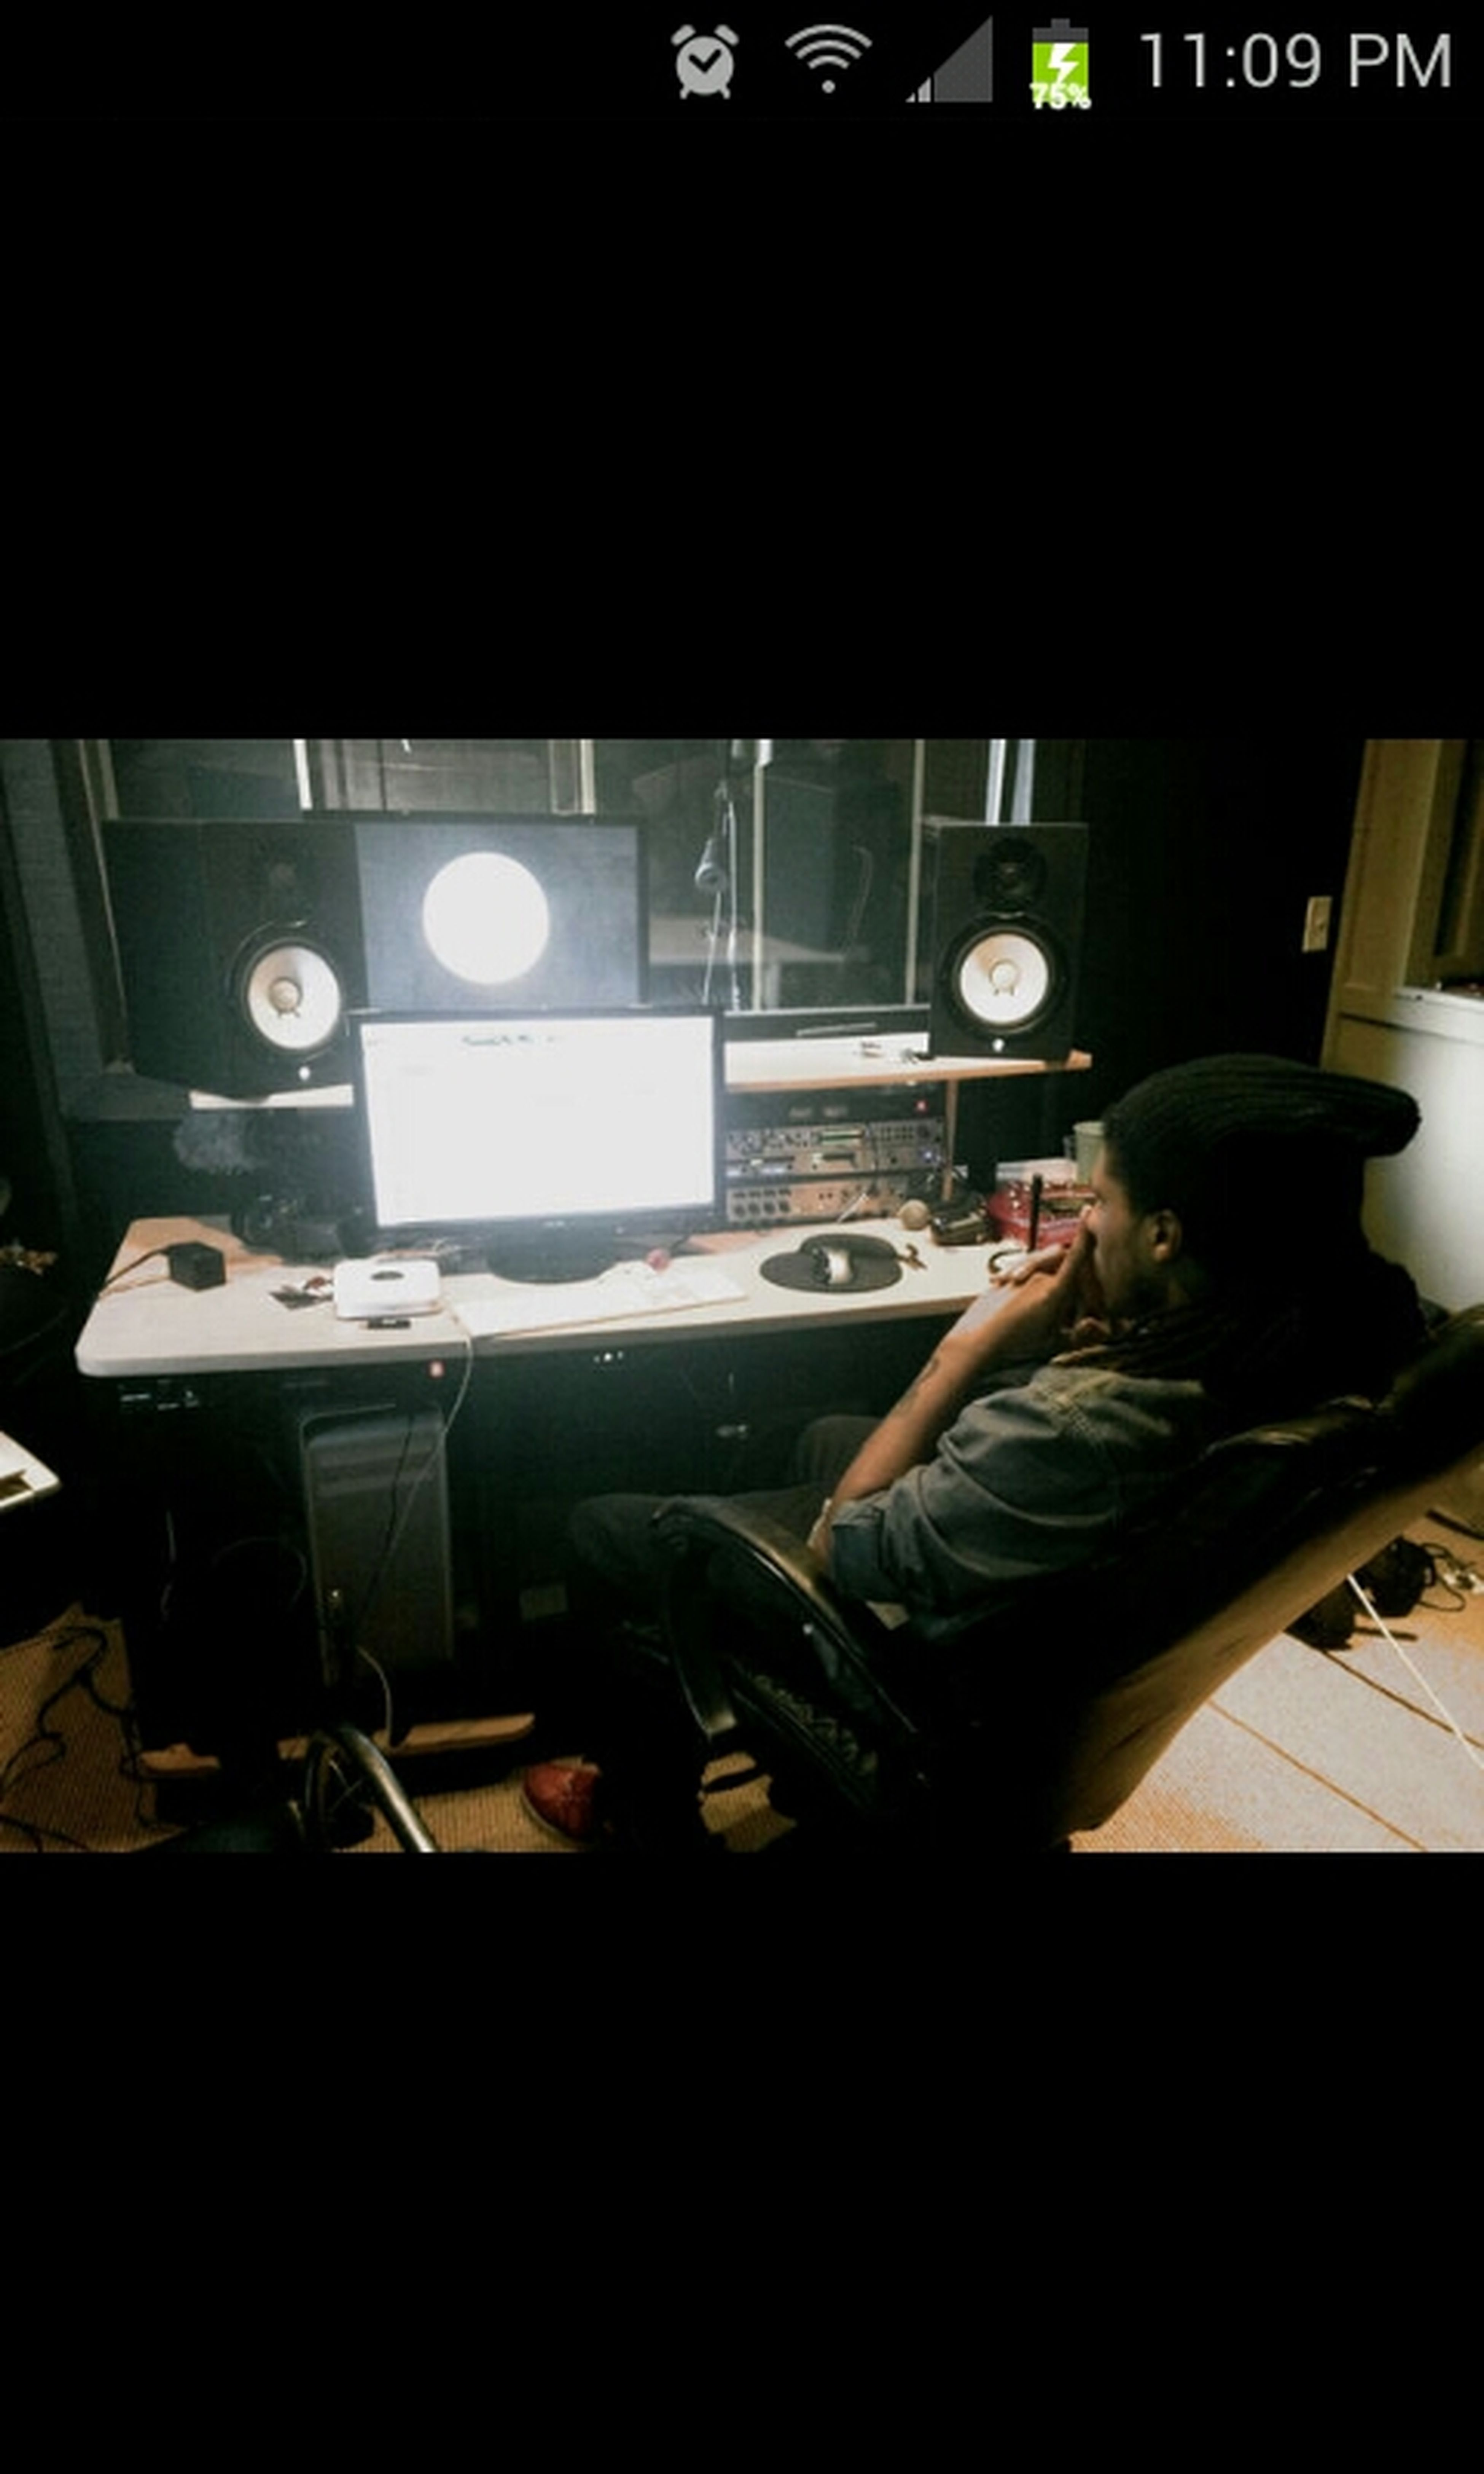 MY NIGGA FOCUSED ON GETTING THIS MUSIC RIGHT!! BOSS VISION ENTERTAINMENT